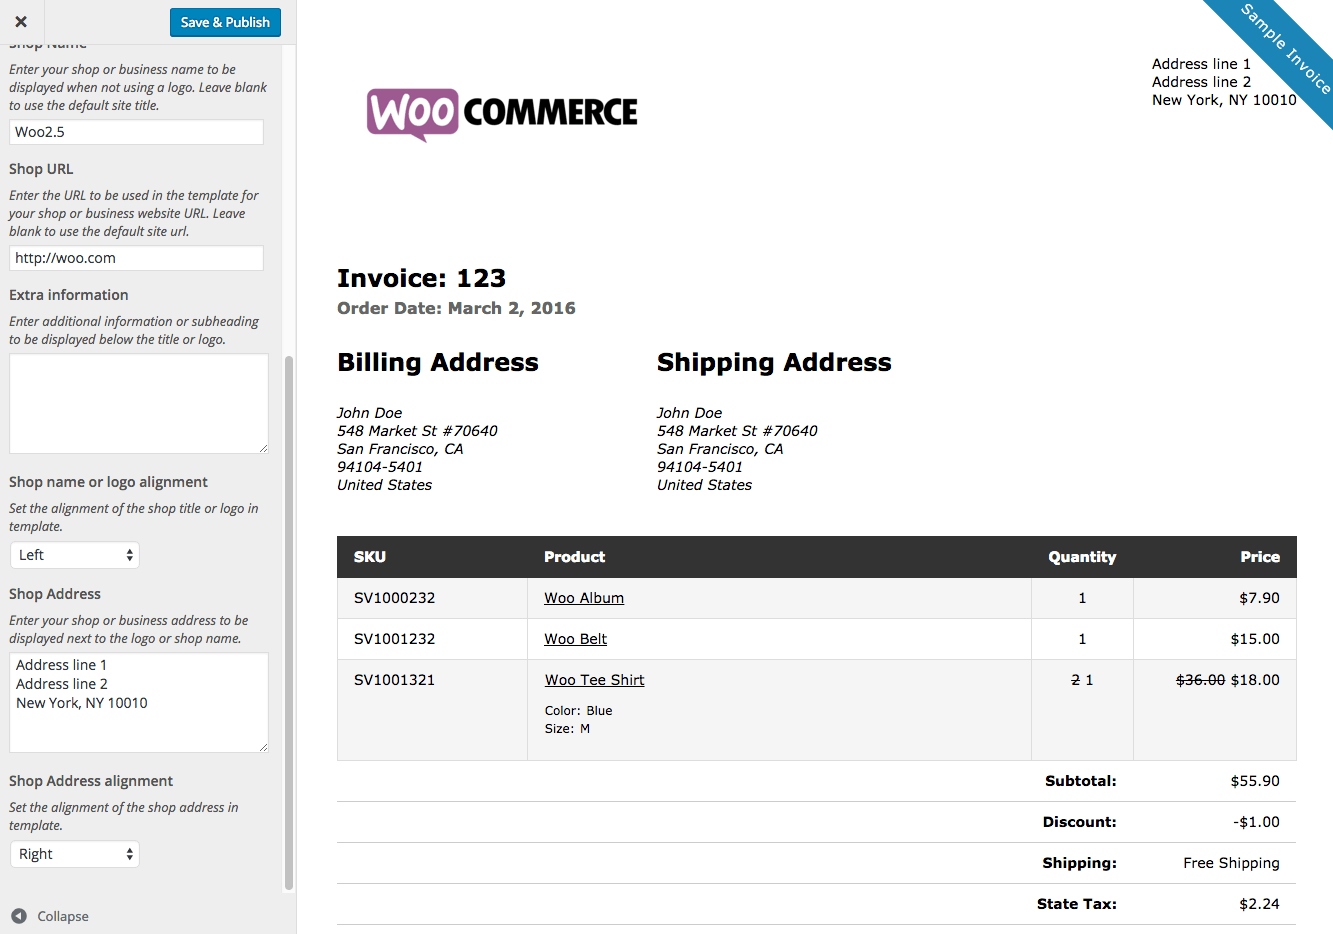 Aldiablosus  Stunning Woocommerce Print Invoices Amp Packing Lists  Woocommerce Docs With Fetching Woocommerce Print Invoices  Packing Lists Customizer With Nice Request A Delivery Receipt Also Constructive Receipts In Addition Neat Receipt App And Pesto Receipt As Well As Letter Of Acknowledgement Of Receipt Additionally Best Receipt Scanner App For Iphone From Docswoocommercecom With Aldiablosus  Fetching Woocommerce Print Invoices Amp Packing Lists  Woocommerce Docs With Nice Woocommerce Print Invoices  Packing Lists Customizer And Stunning Request A Delivery Receipt Also Constructive Receipts In Addition Neat Receipt App From Docswoocommercecom